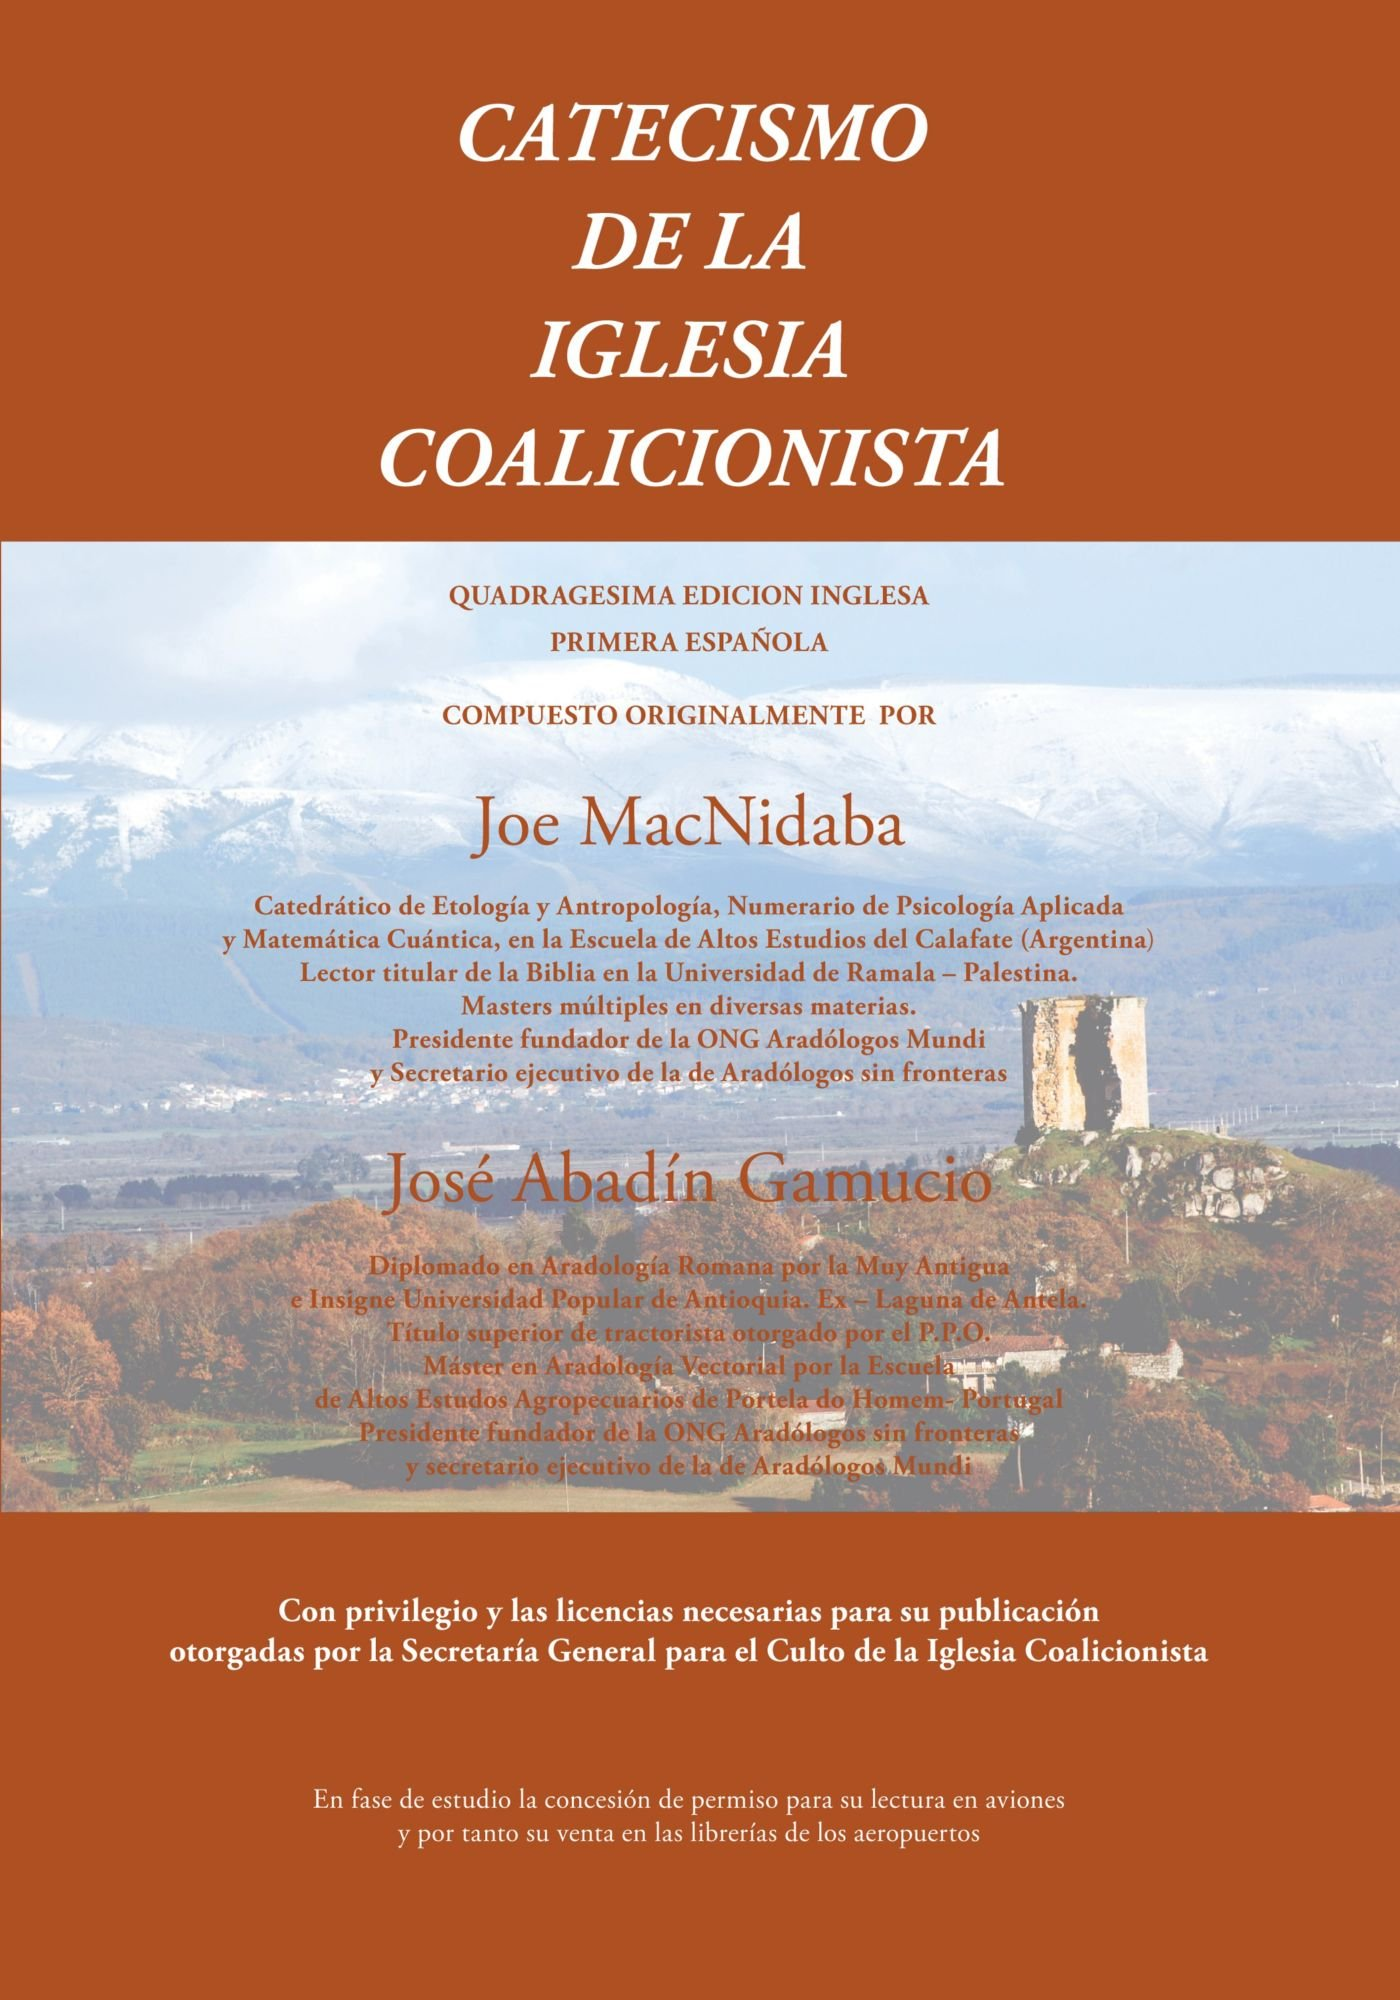 Catecismo de la Iglesia Coalicionista (Spanish Edition): Joe MacNidaba: 9781425114411: Amazon.com: Books